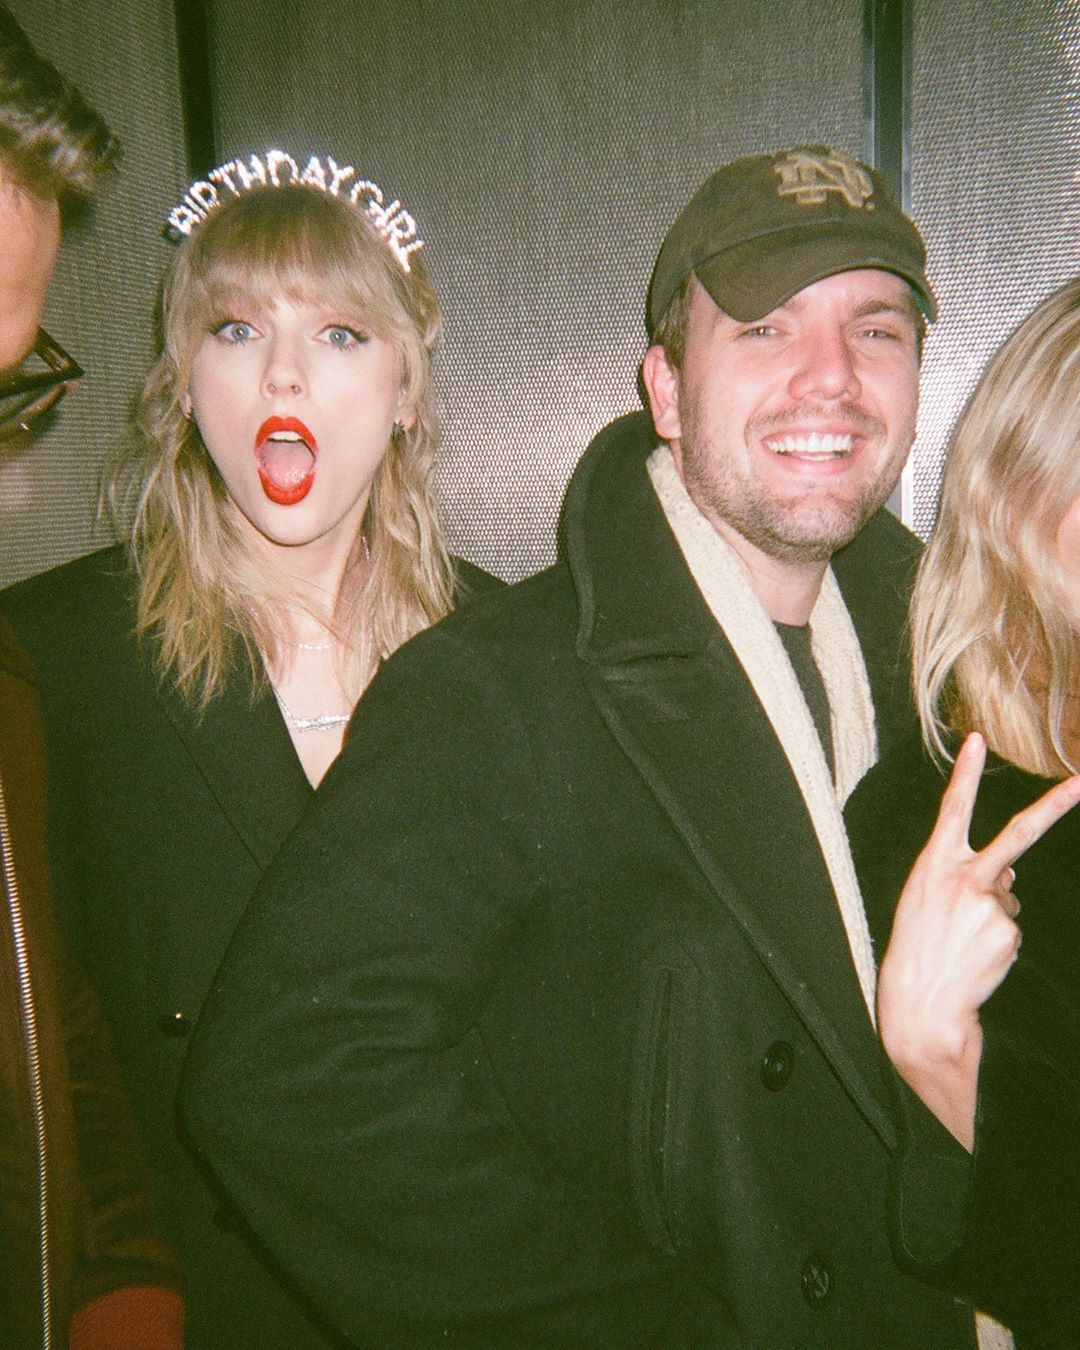 Taylor Swift On Instagram It S National Siblings Day My Brother Austinkingsleyswift Is One O In 2020 Taylor Swift Brother Taylor Swift Family Taylor Swift Pictures